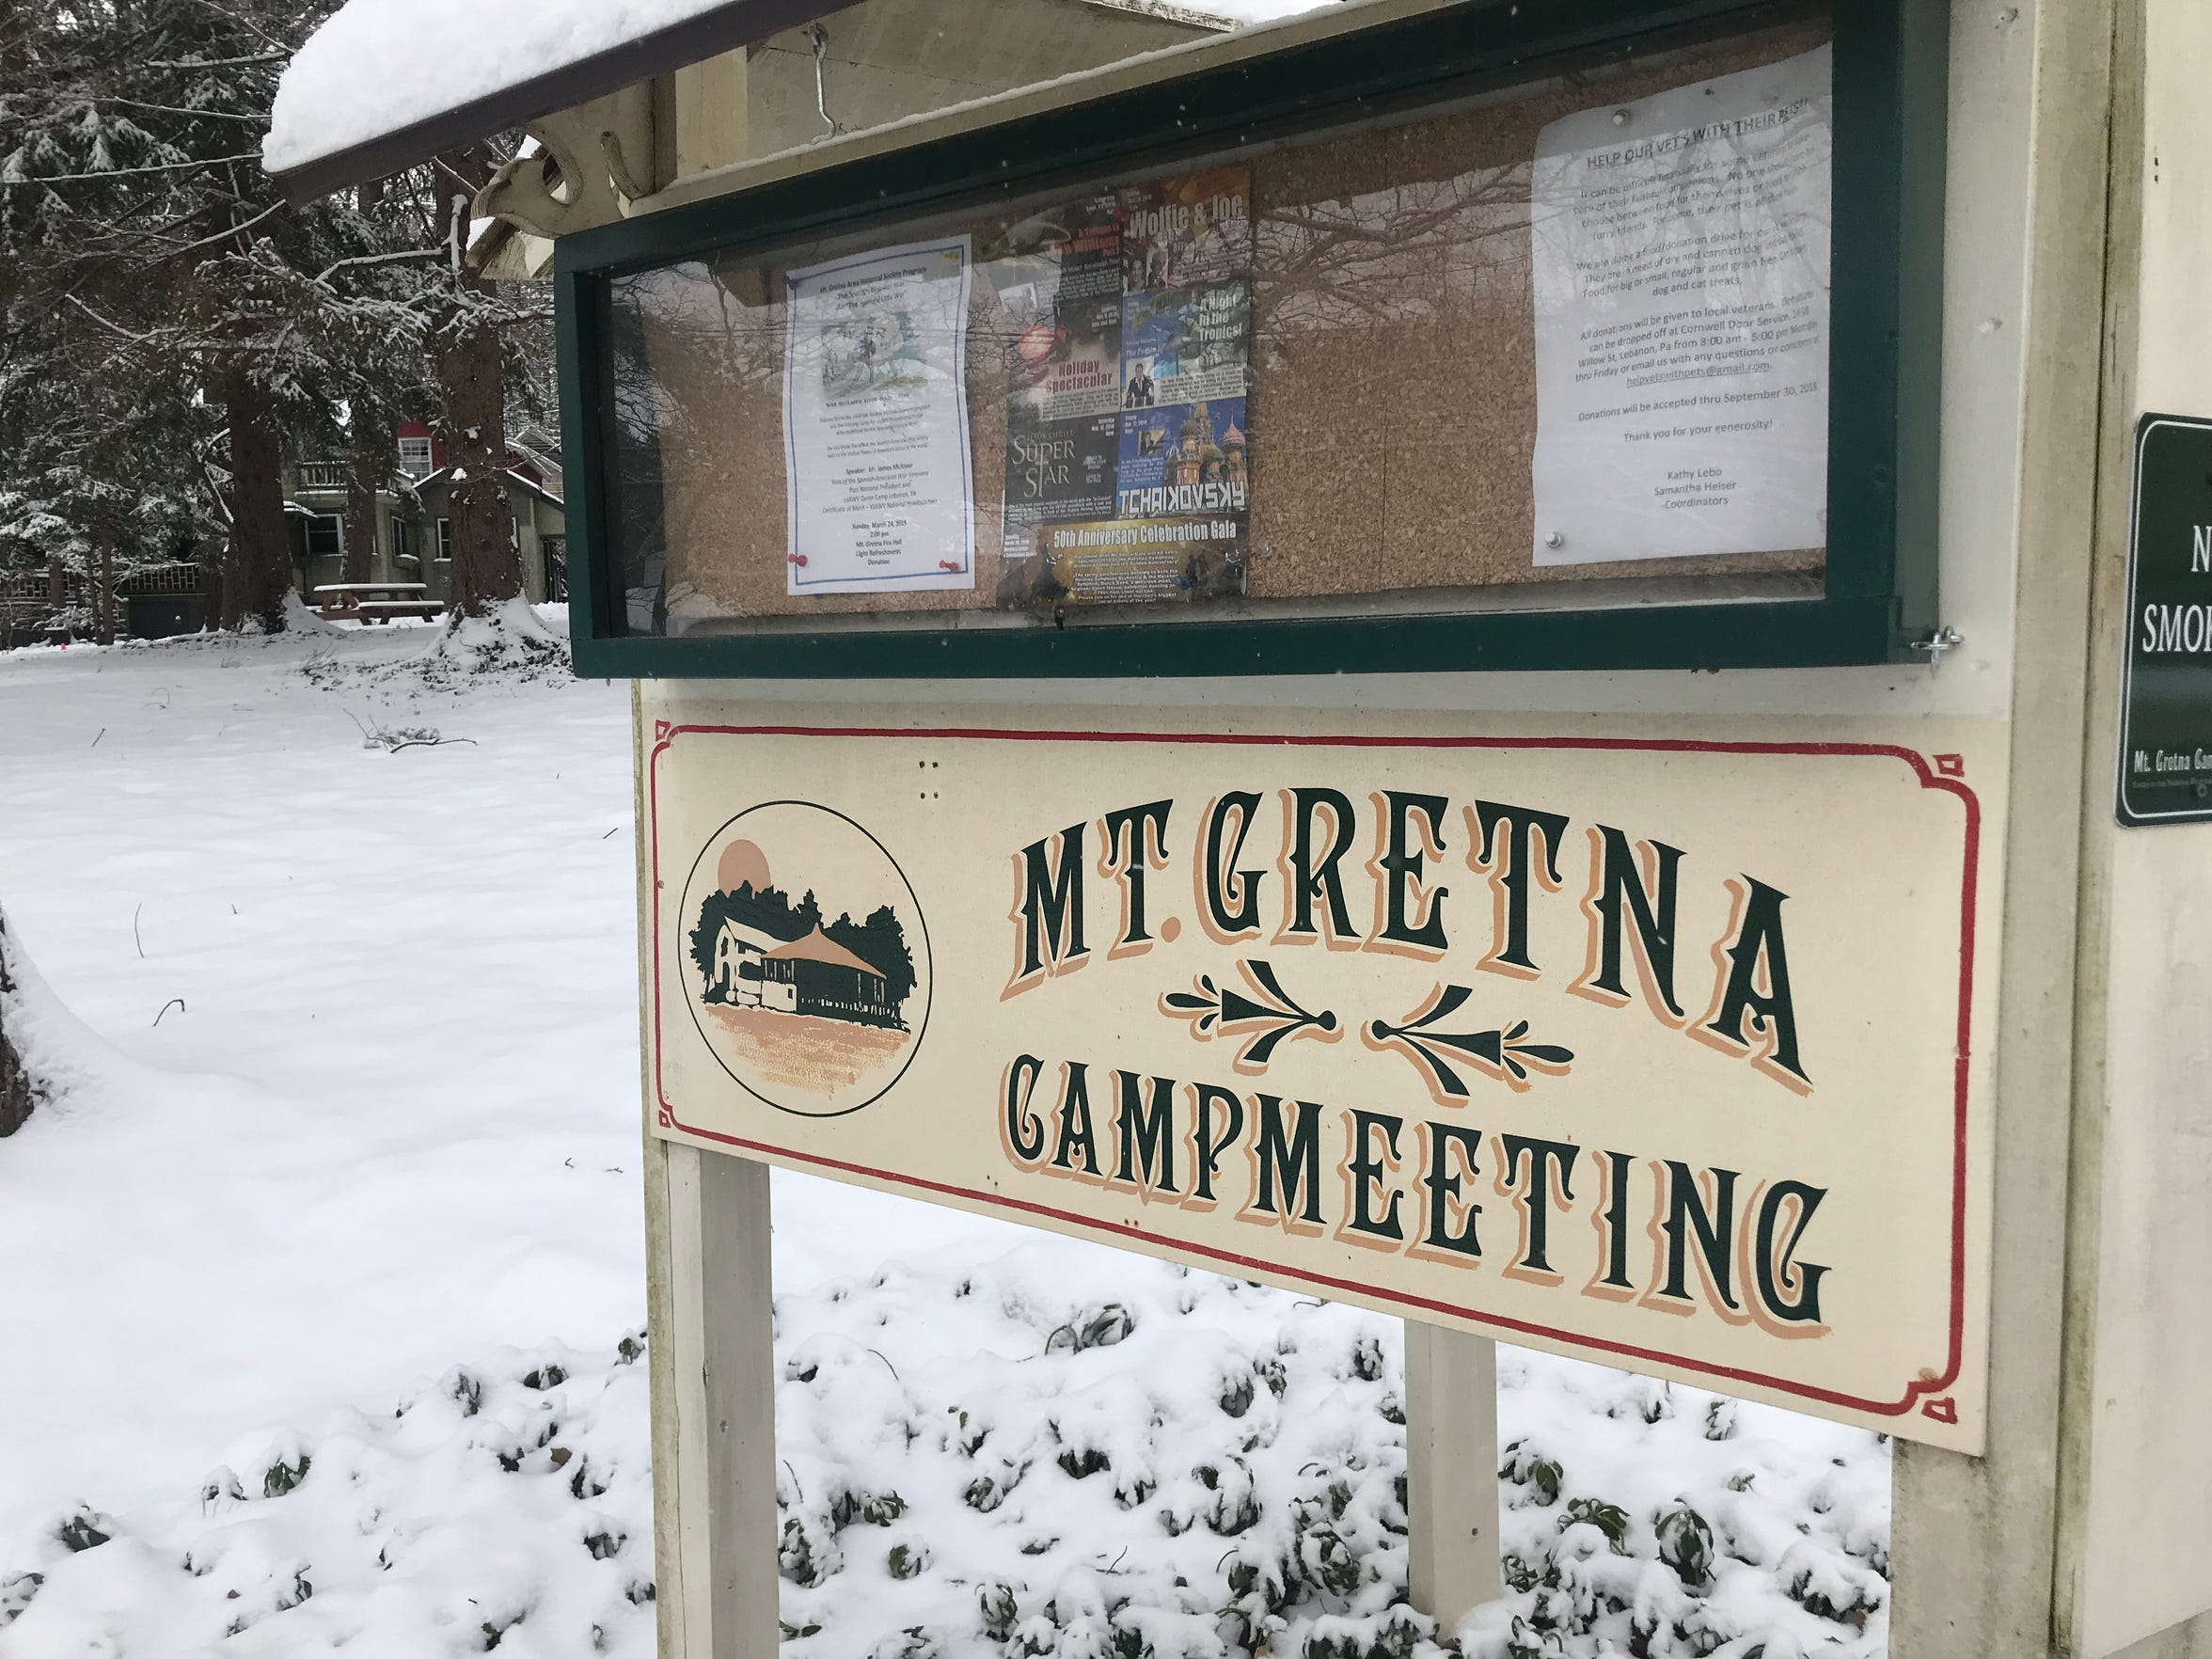 There are about 236 properties in the Mount Gretna Campmeeting, founded in the late 1800s by the forerunner of the United Methodist Church.